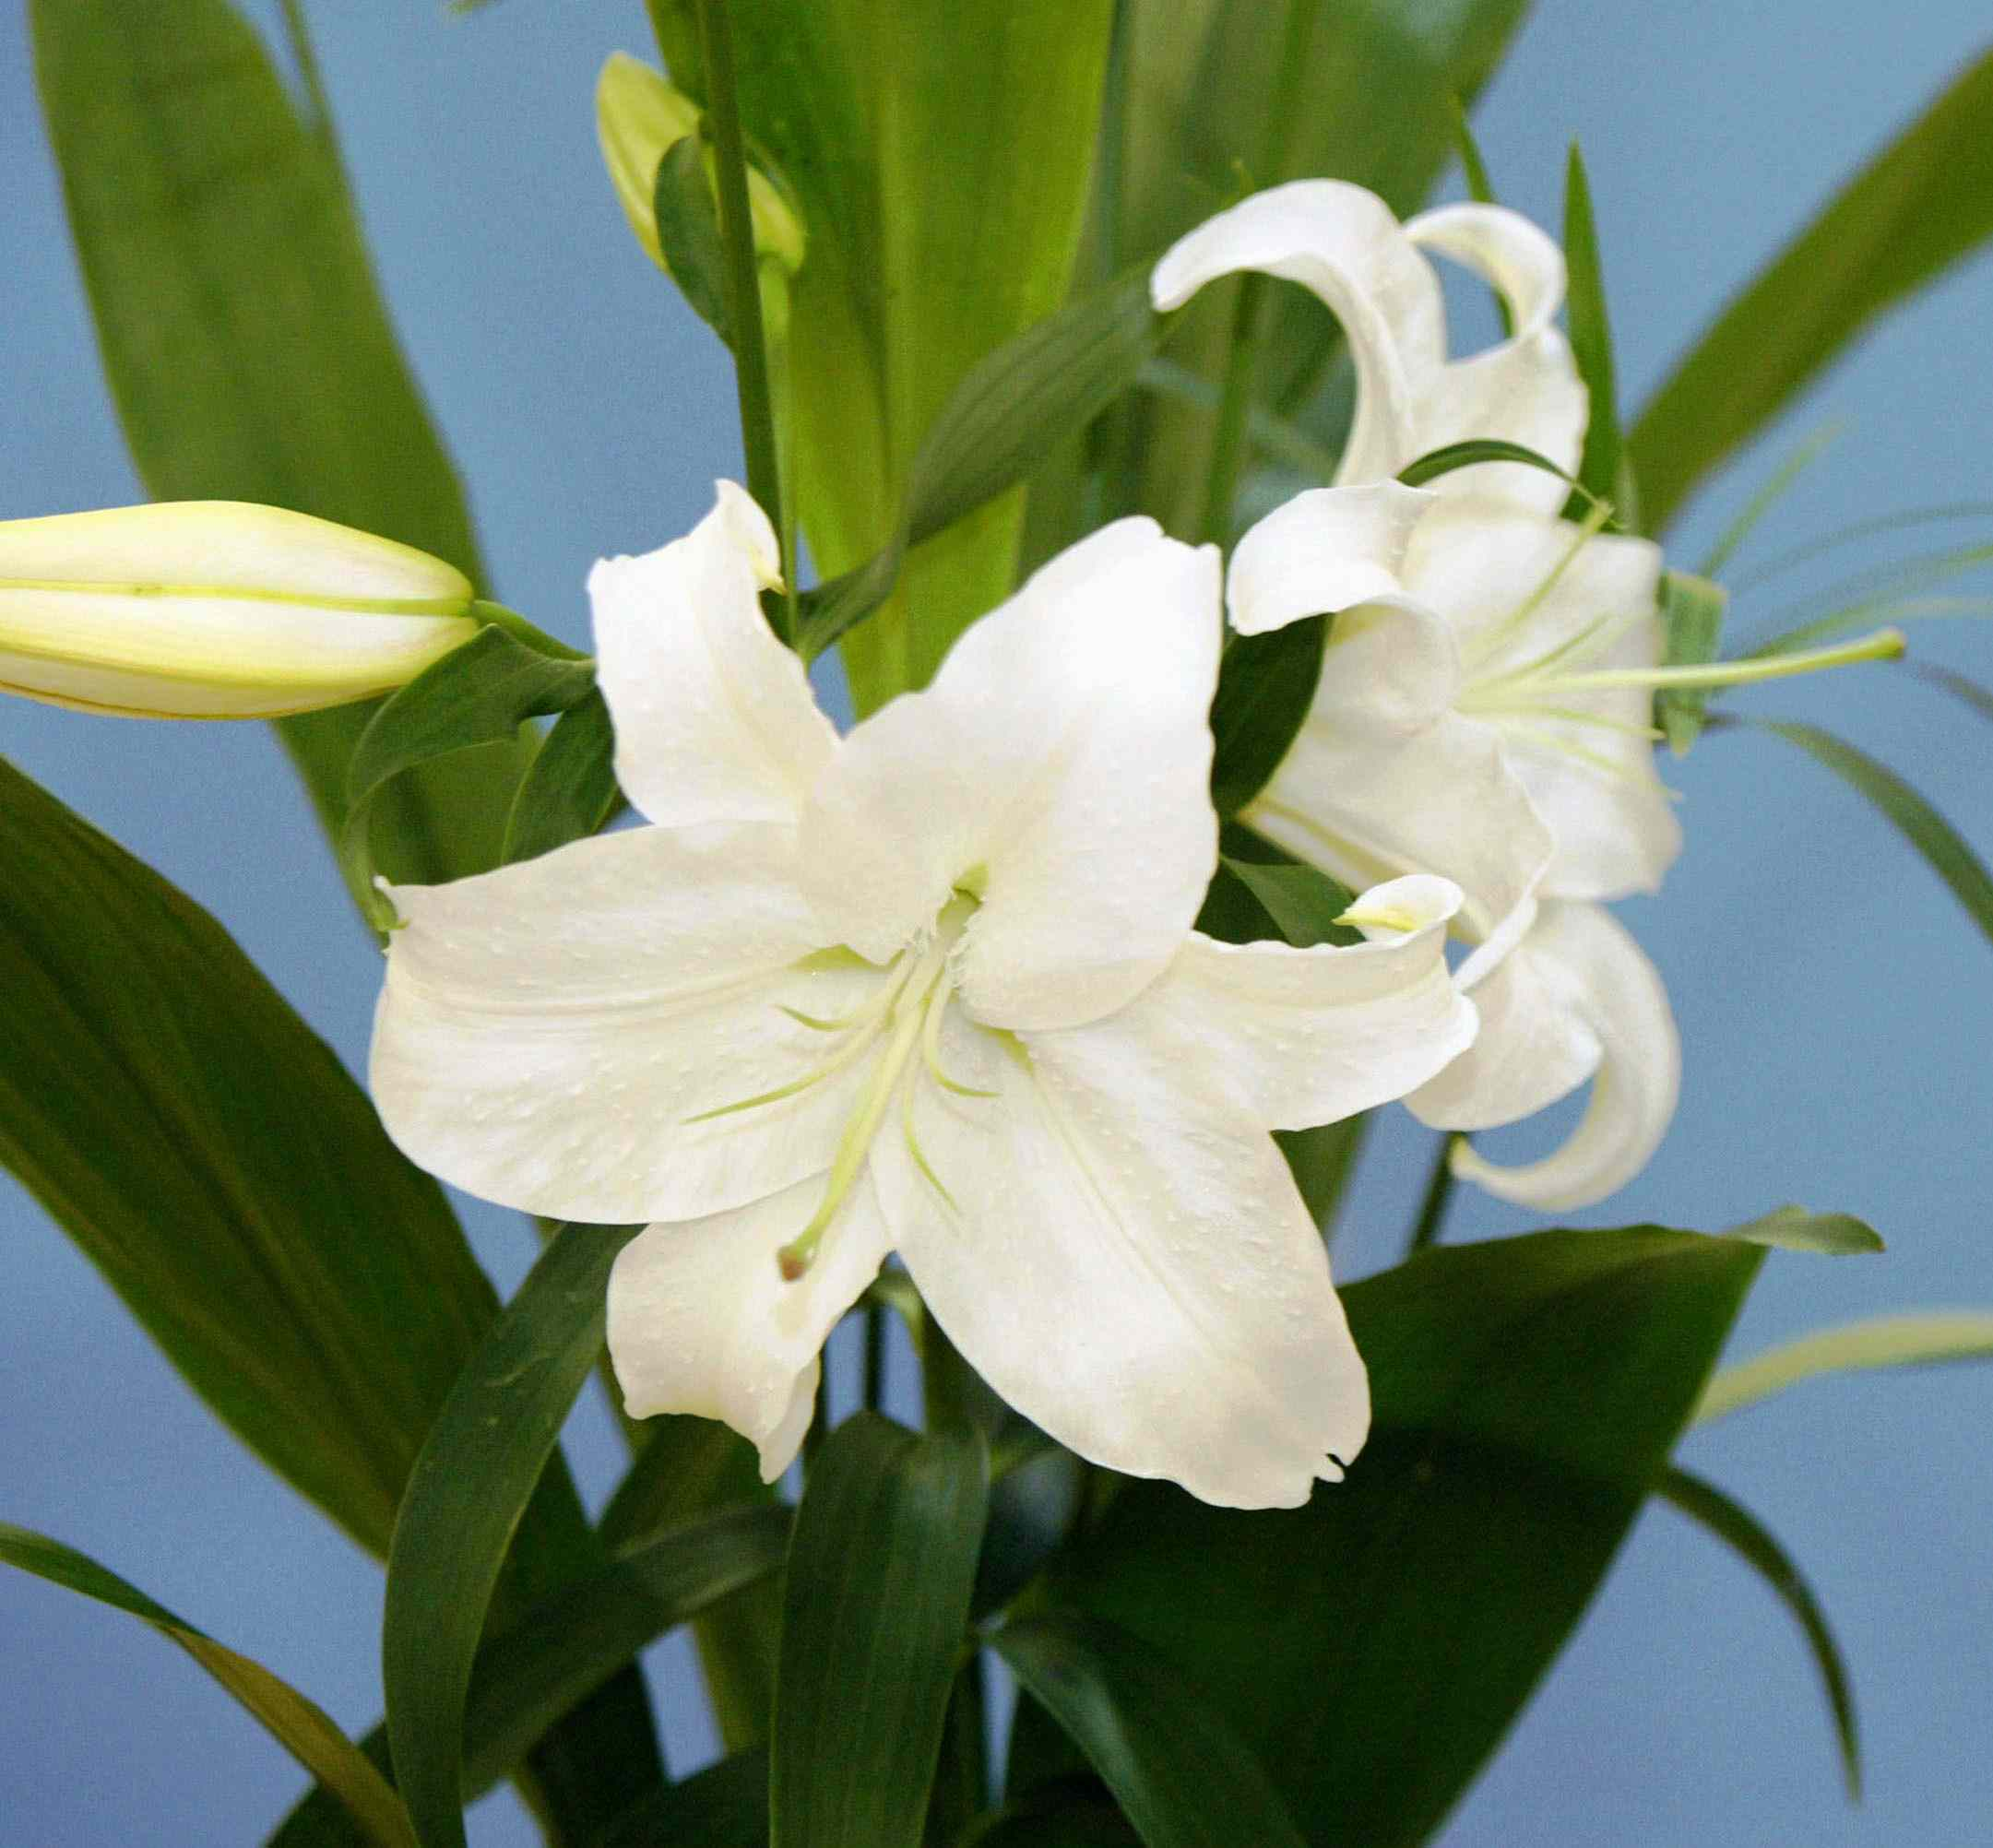 Substances that can be poisonous to dogs dog toxins and poisons photo of lilies poisonous to dogs izmirmasajfo